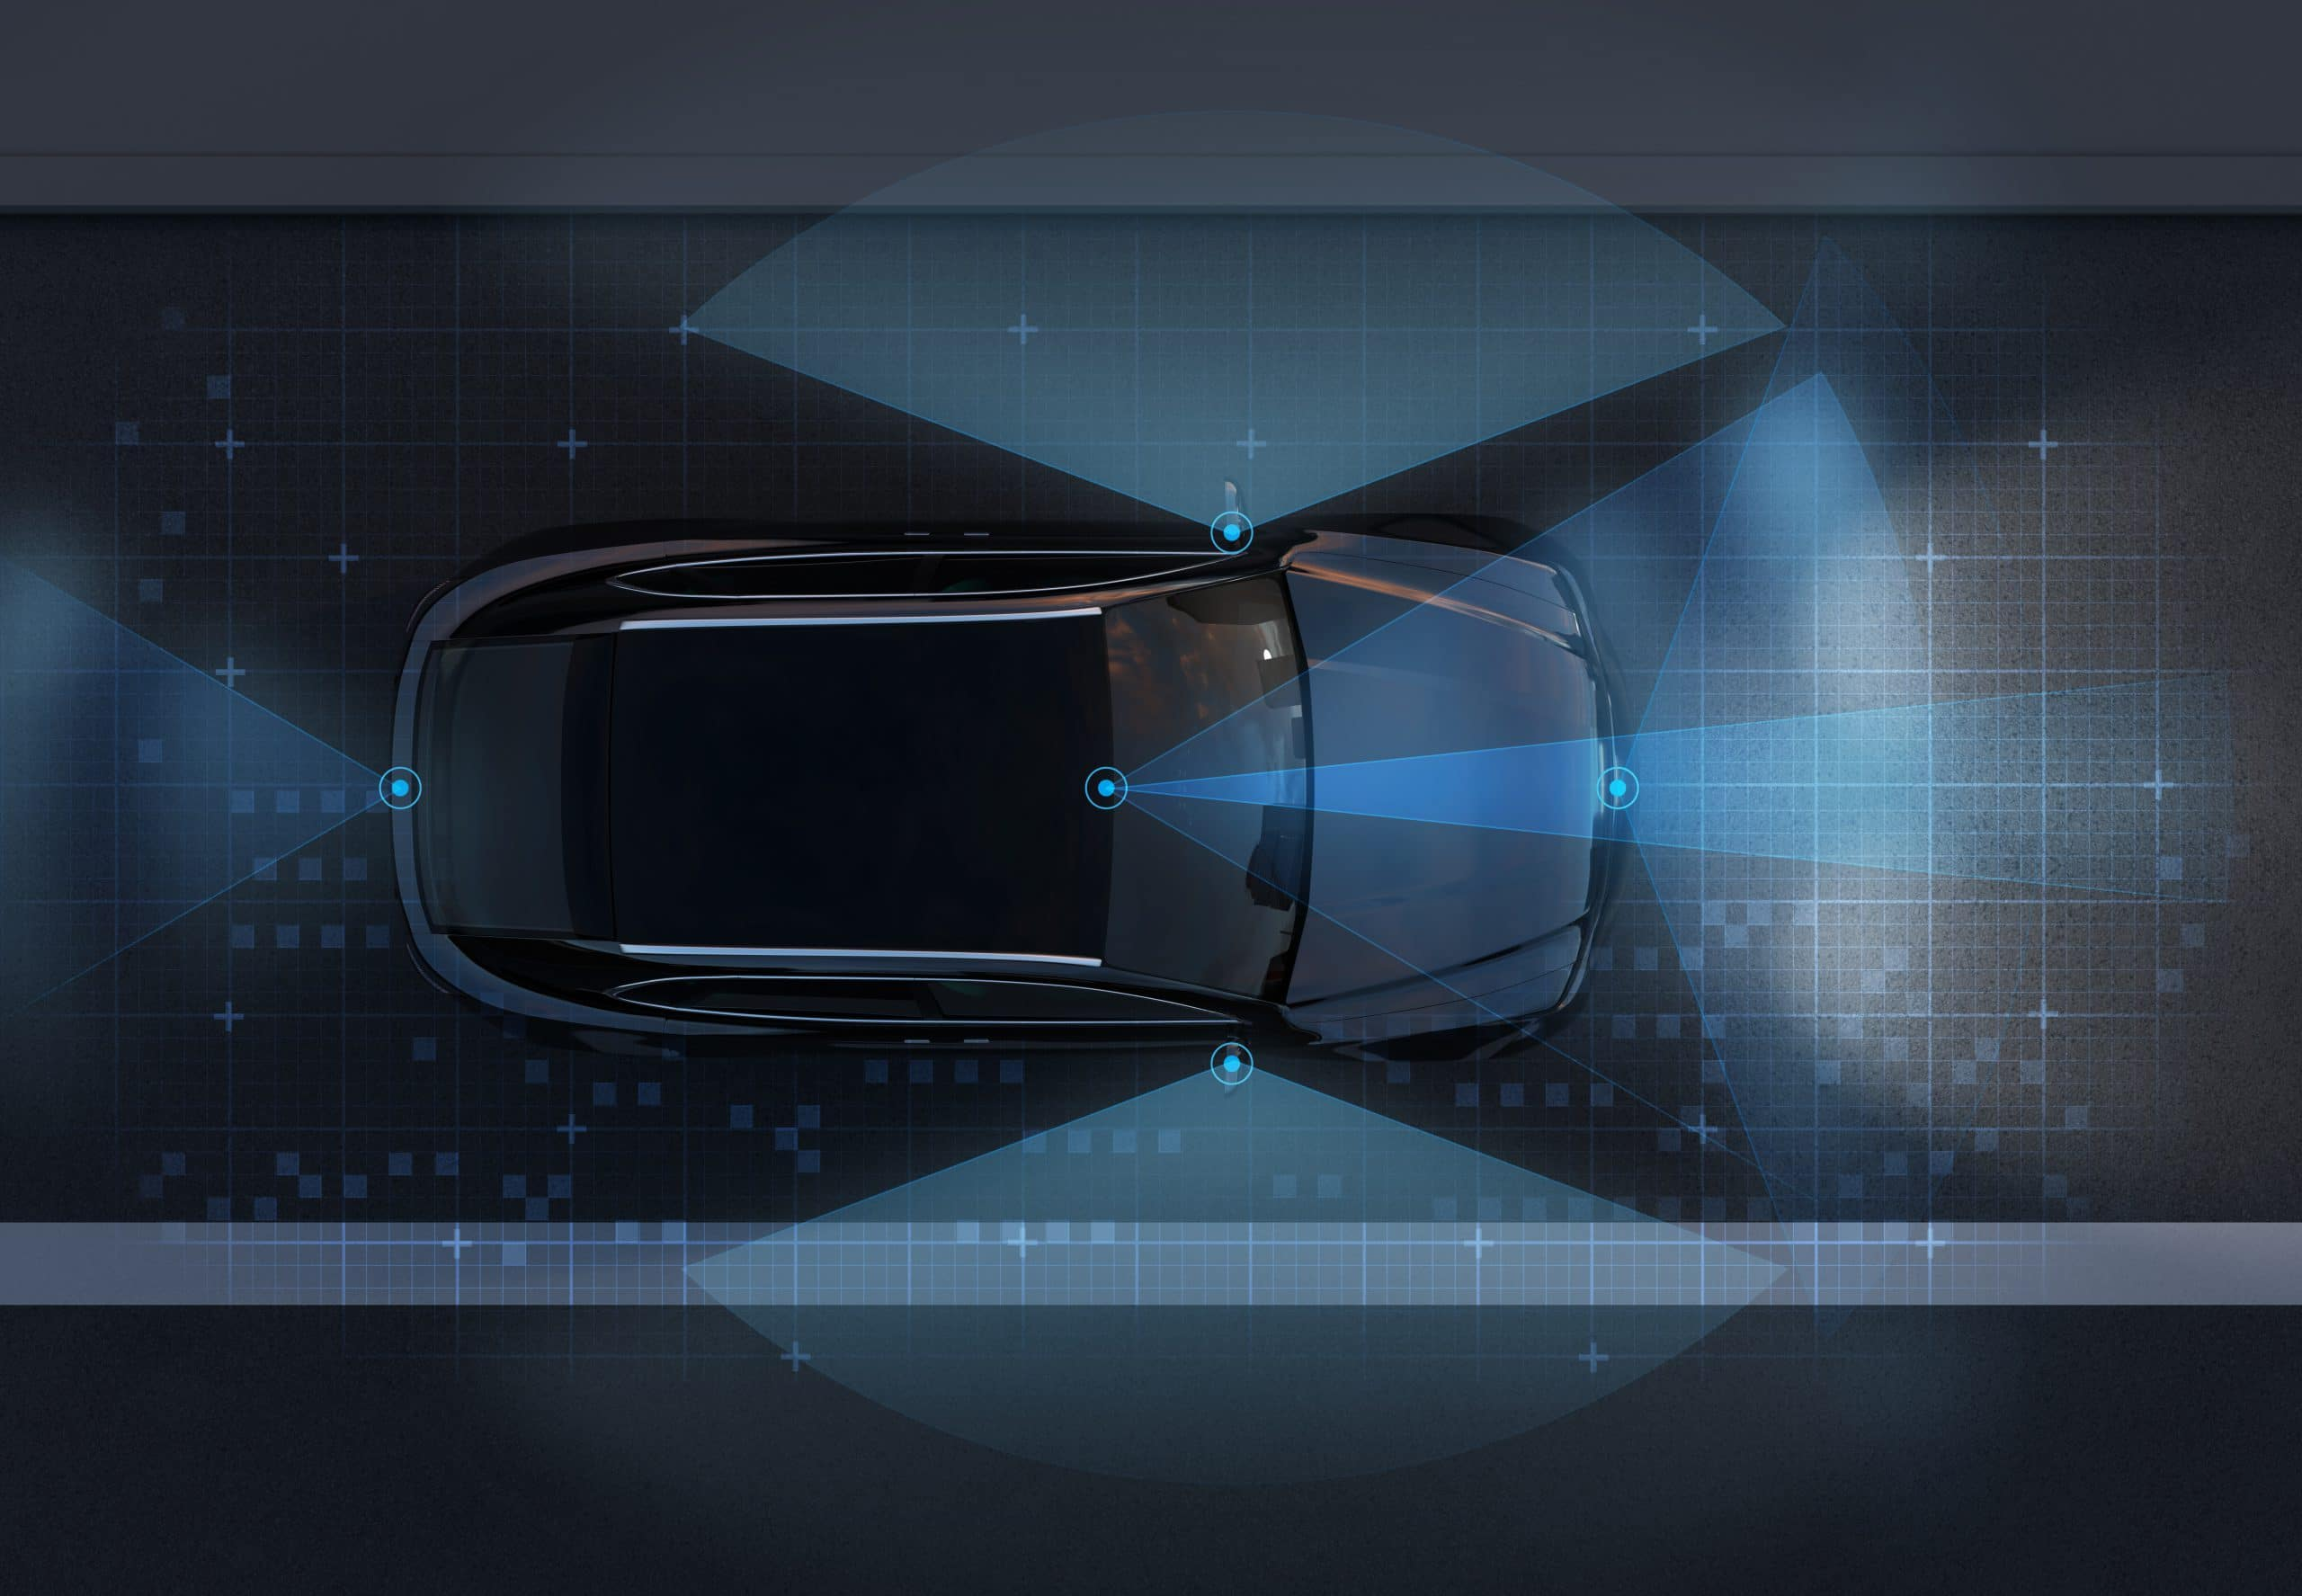 Top view of self-driving SUV on the road with sensing graphic pattern retouched